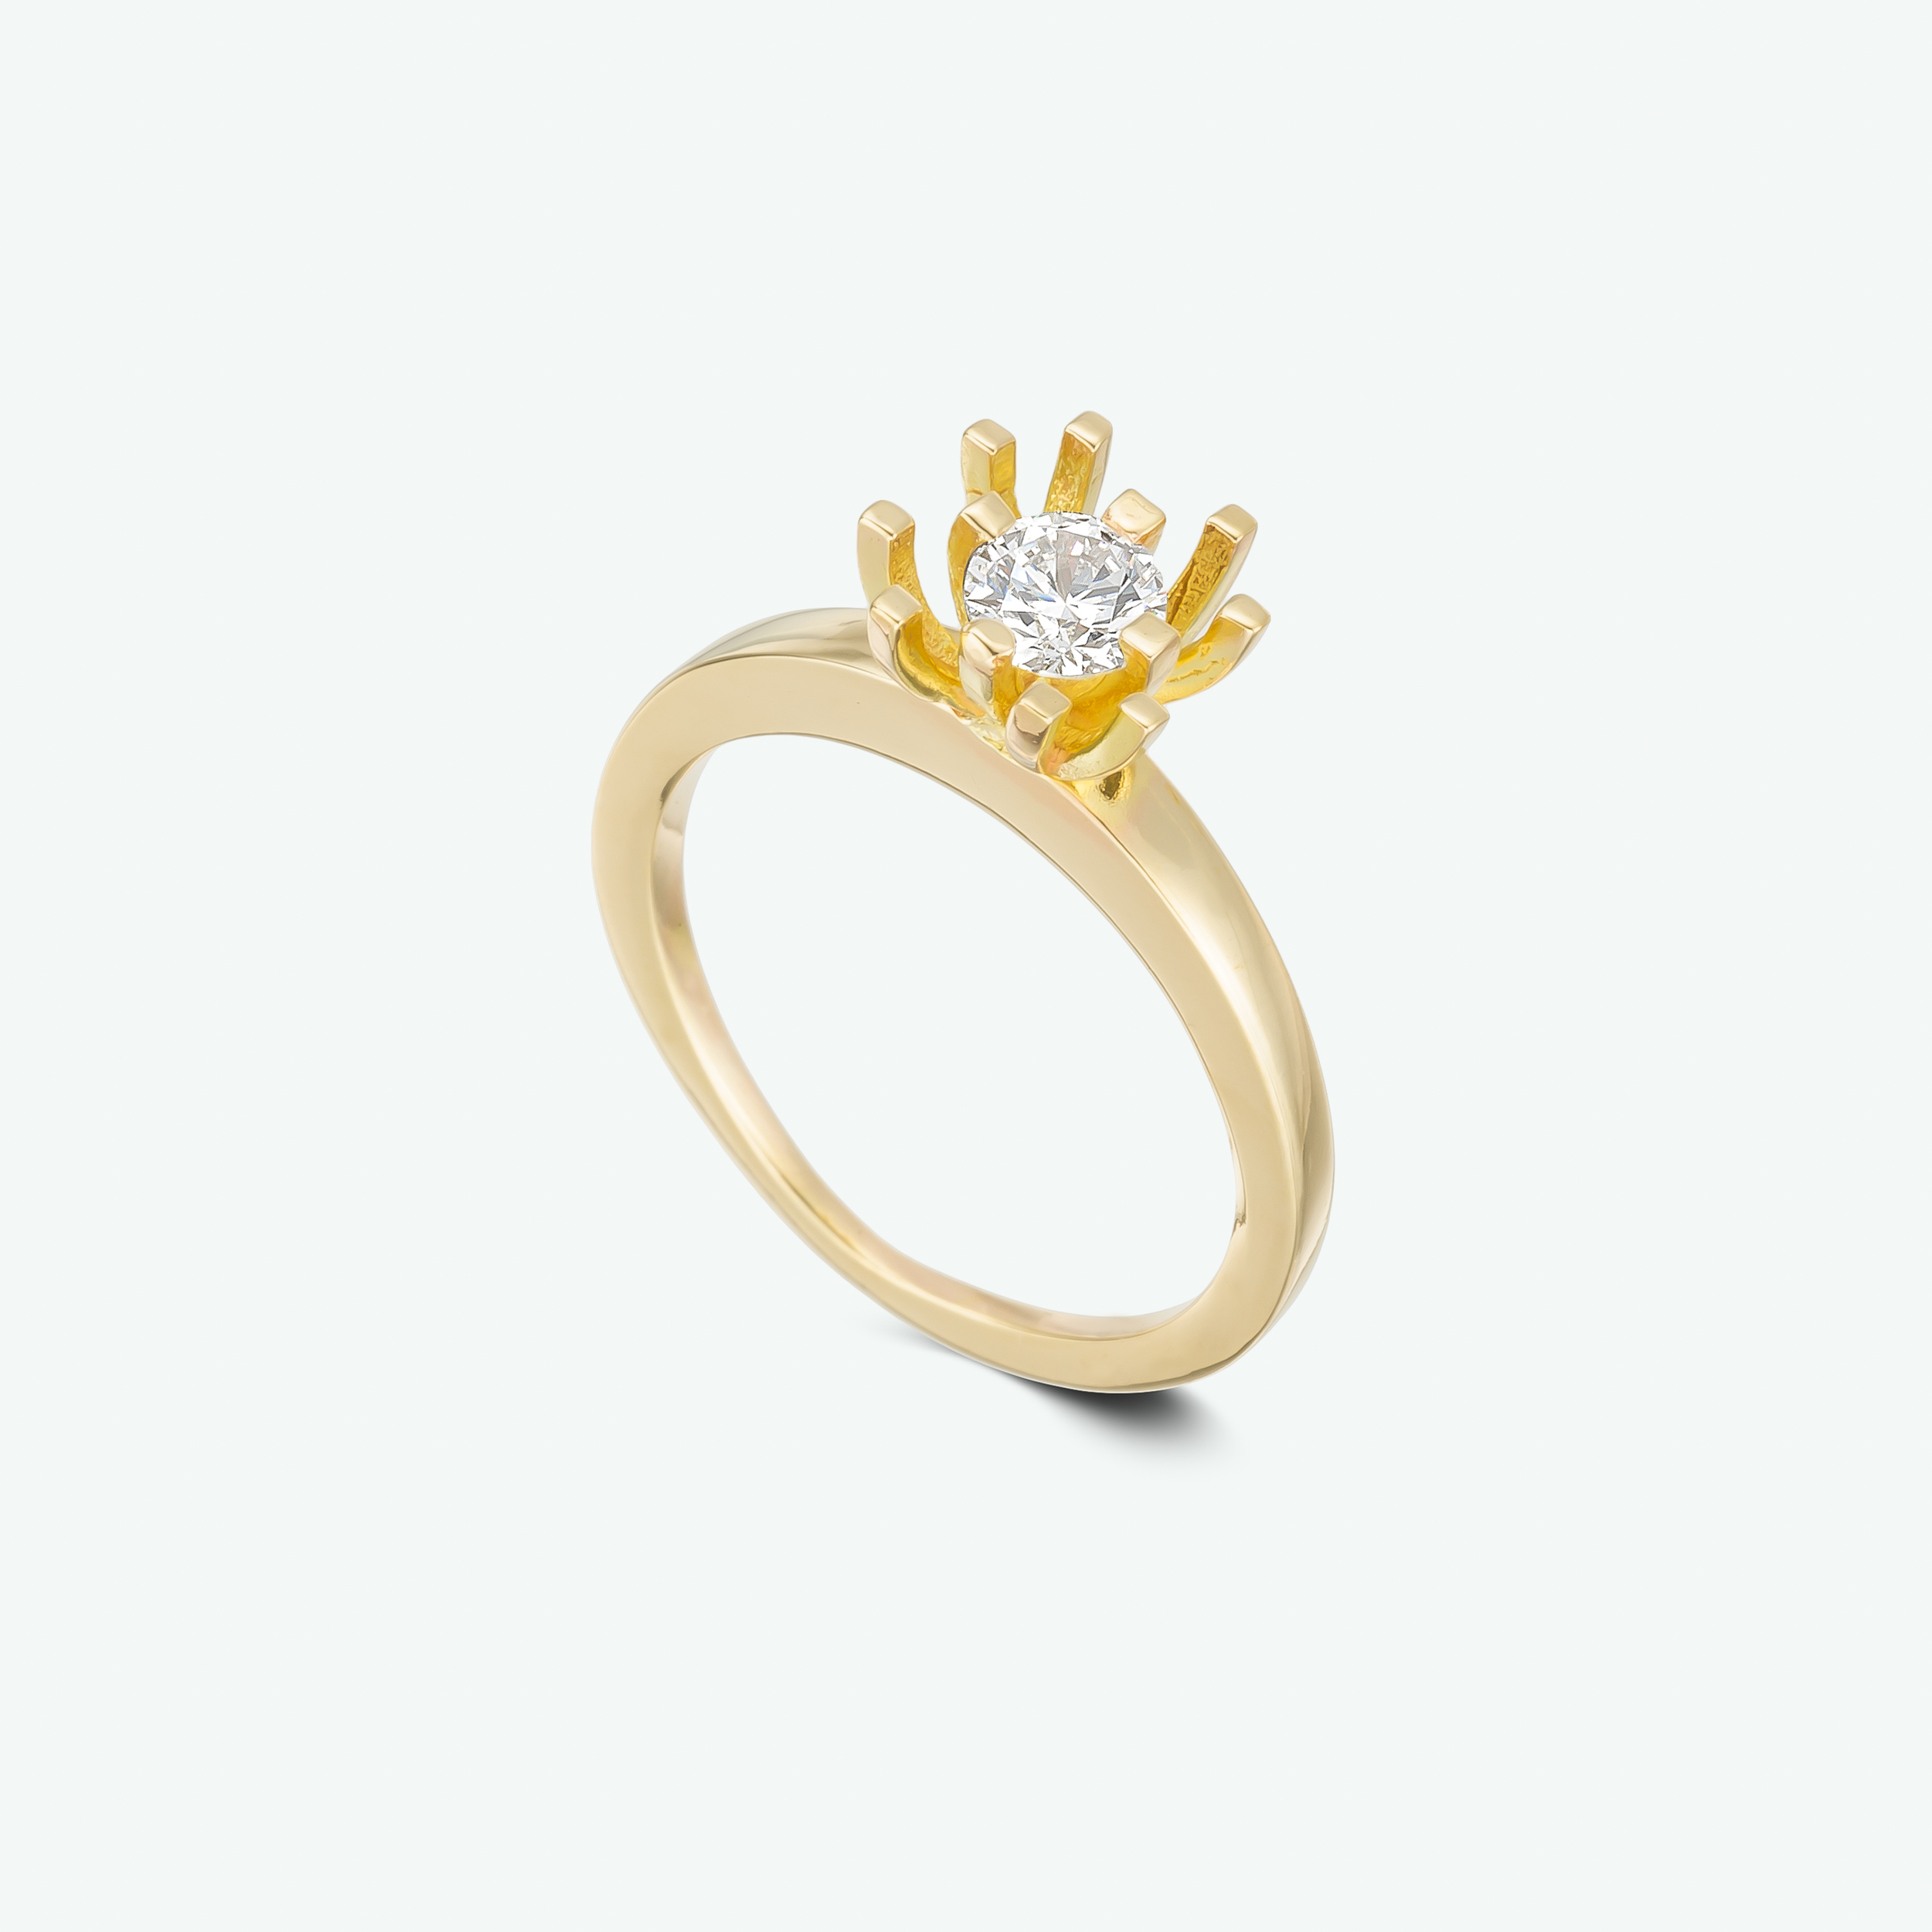 A uniquely designed solitaire engagement ring composed of 14k yellow gold and set with a brilliant diamond. D: 0.30 ct.